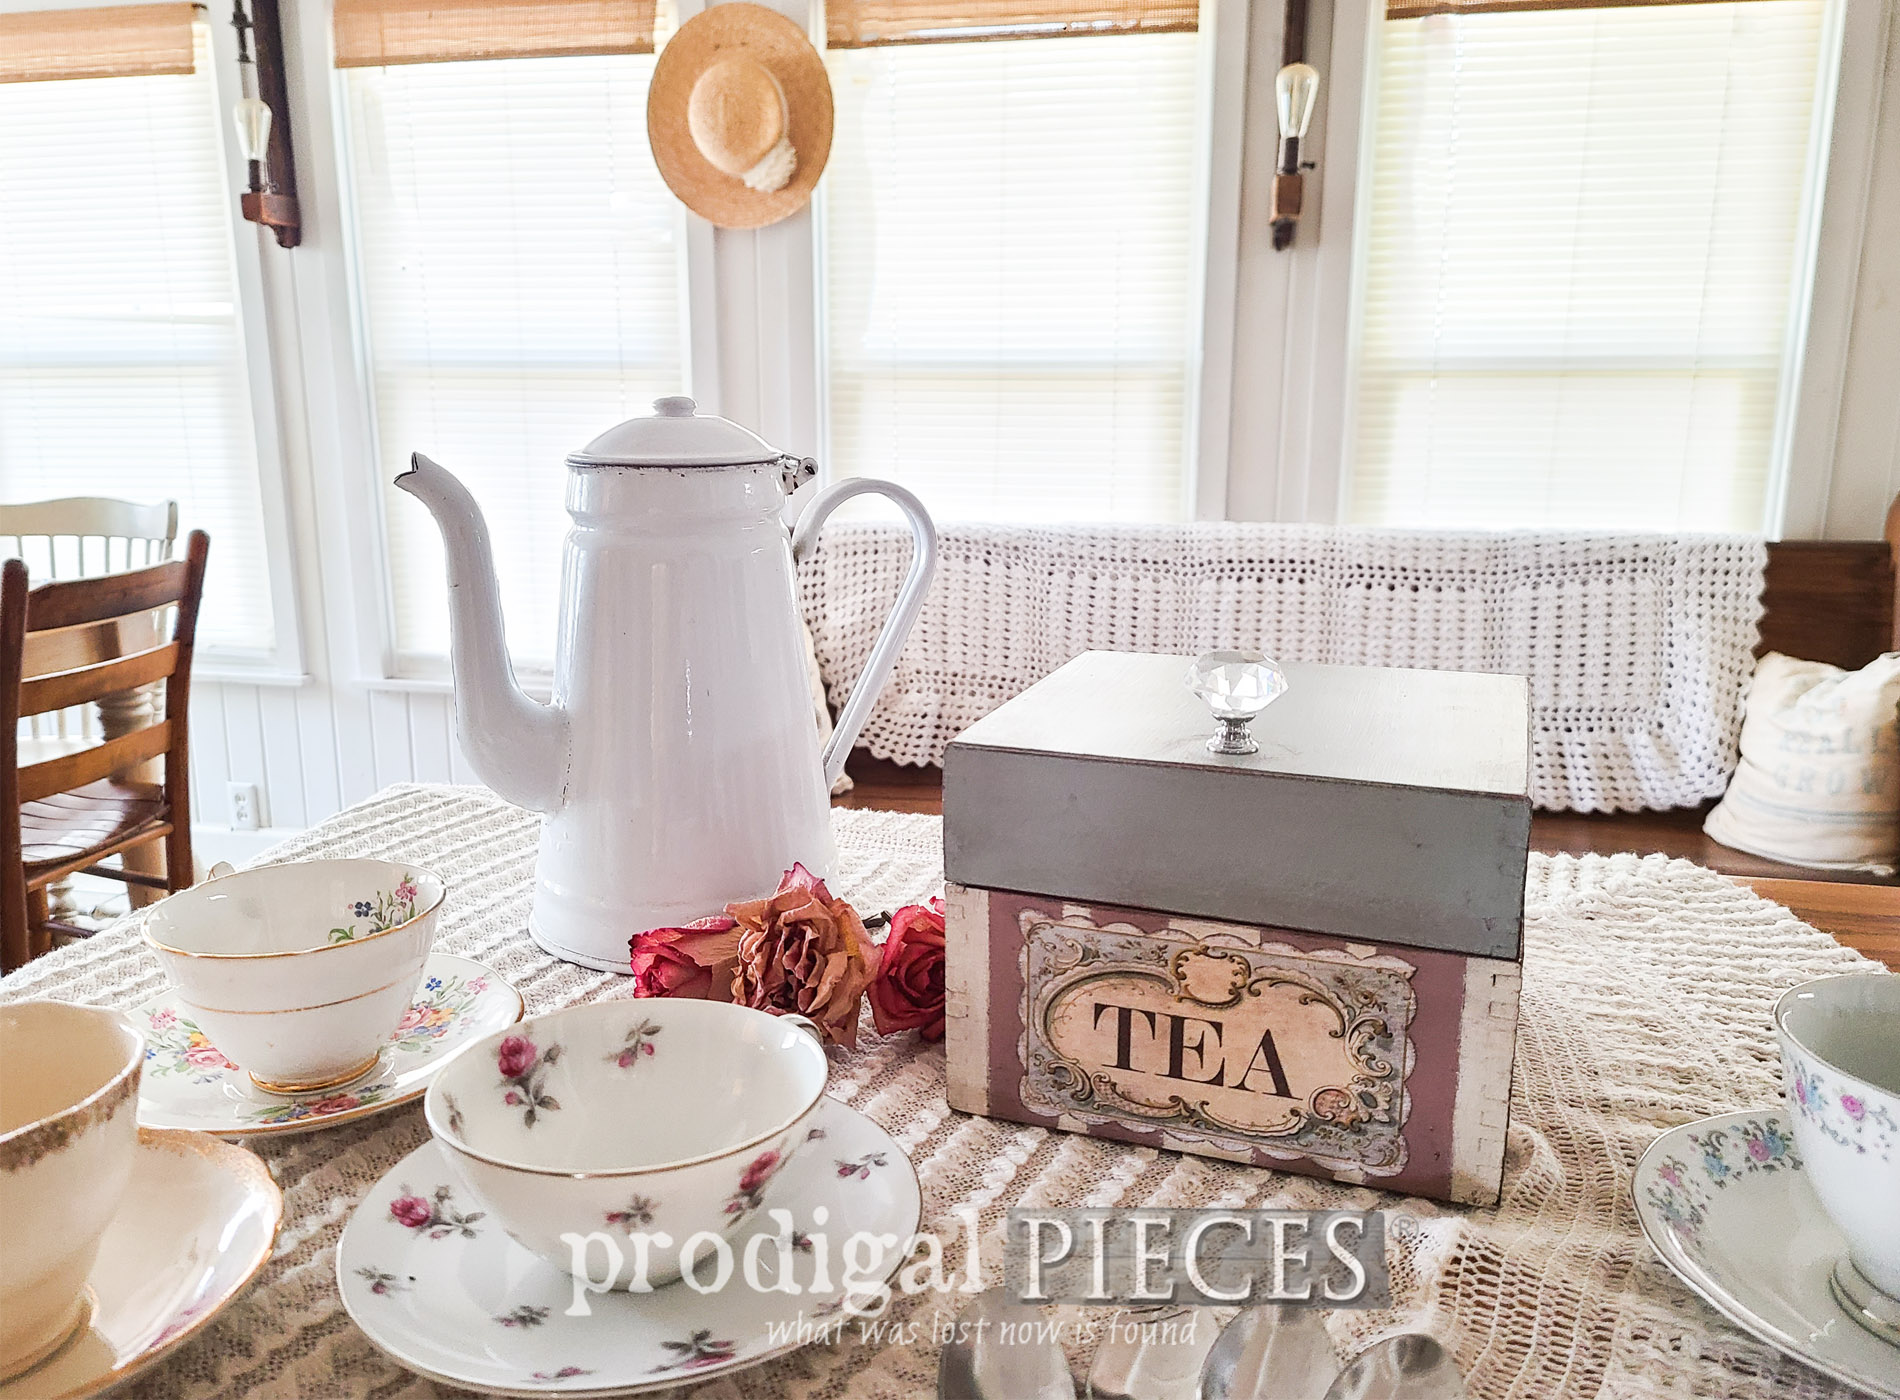 Featured Vintage Tea Box upcycled from recipe box by Larissa of Prodigal Pieces | prodigalpieces.com #prodigalpieces #vintage #cottage #shabbychic #home #homedecor